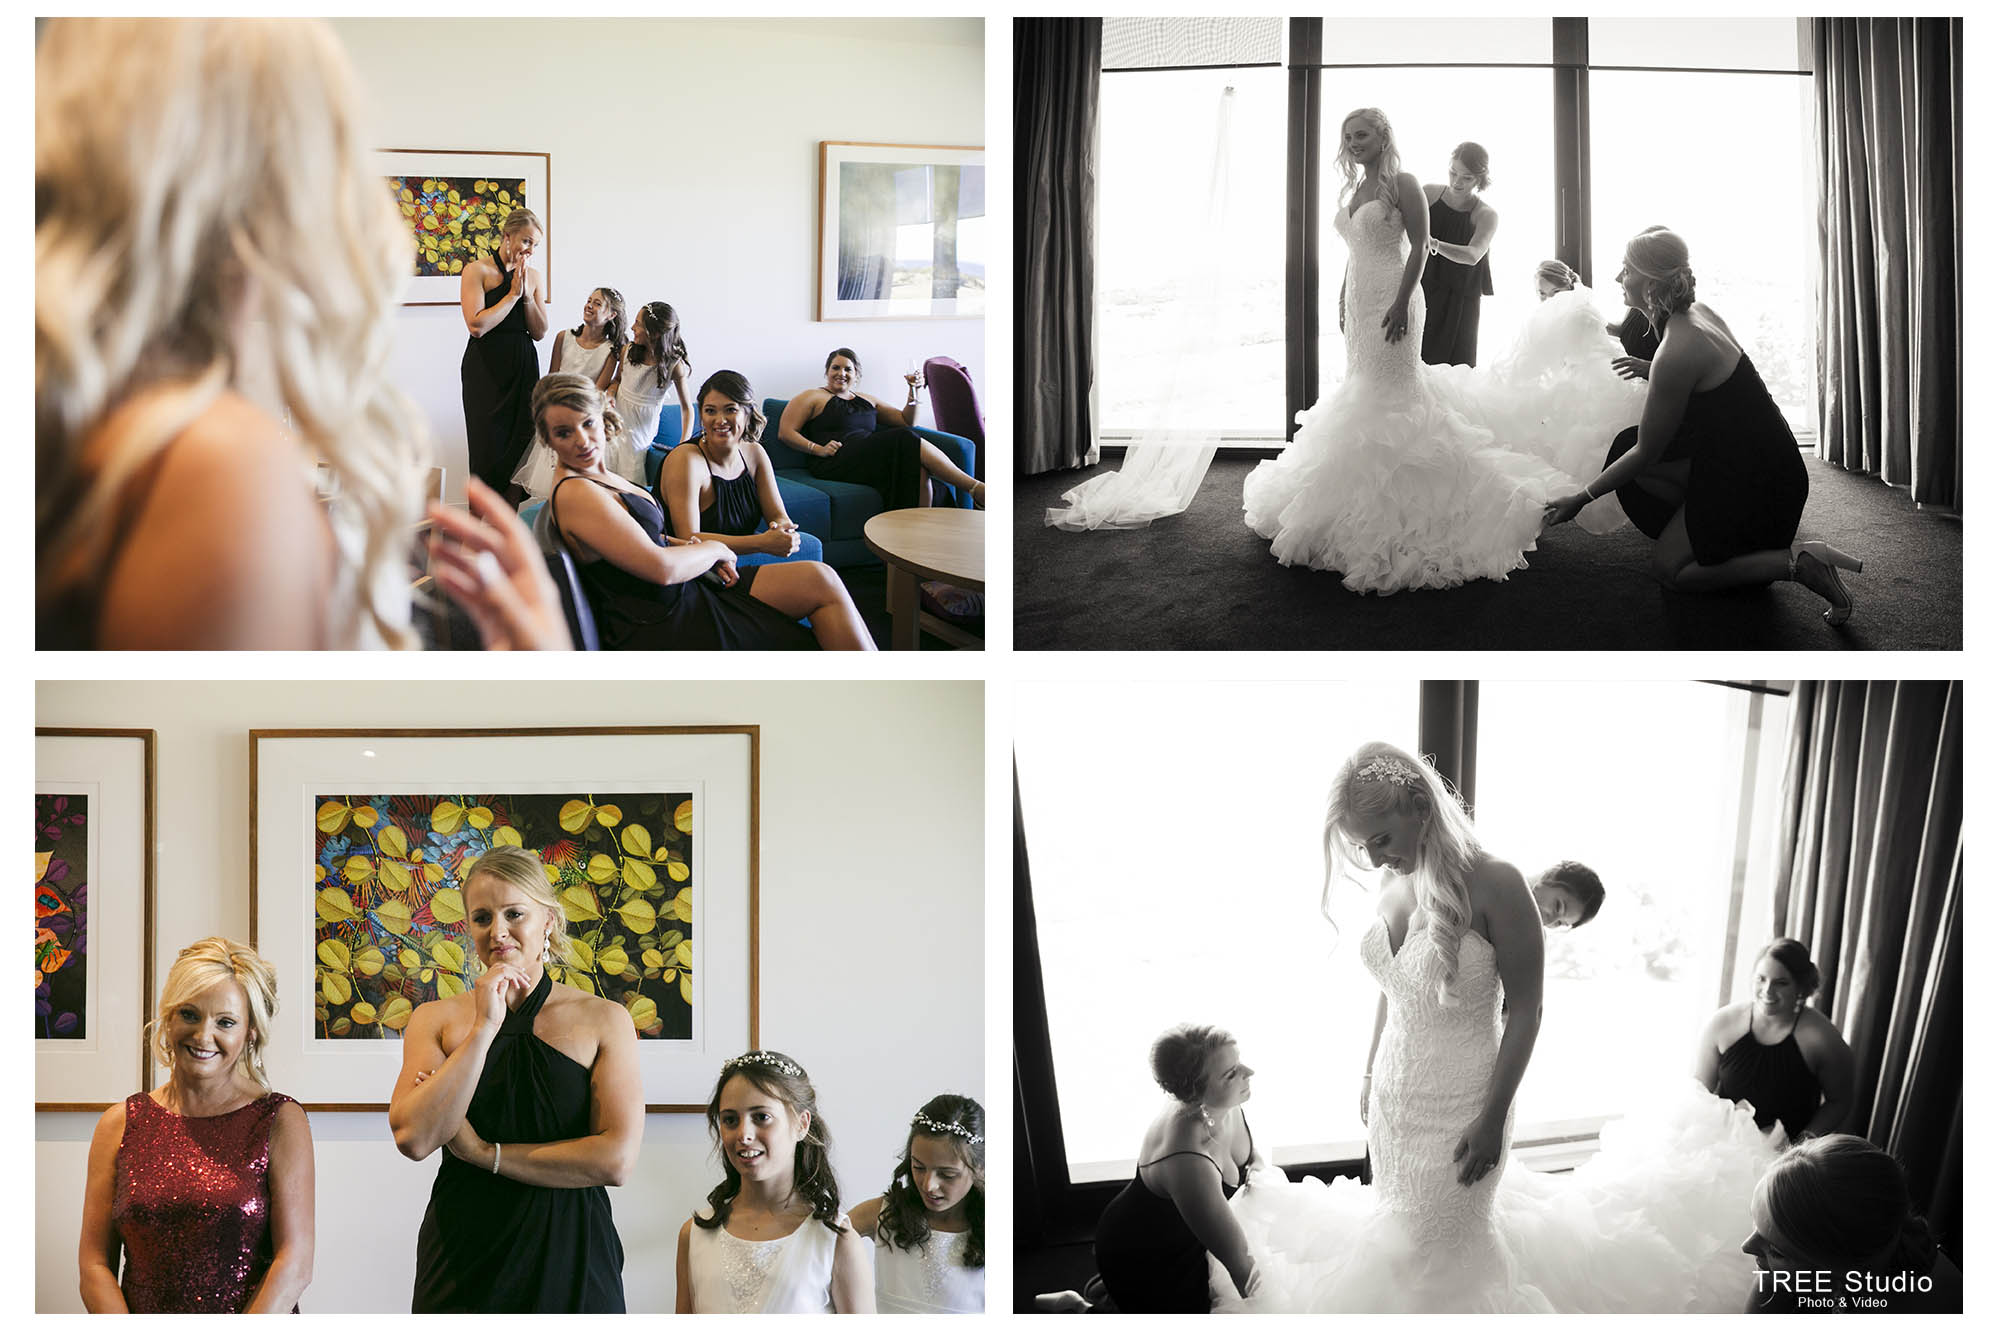 RACV Wedding Photography (14)